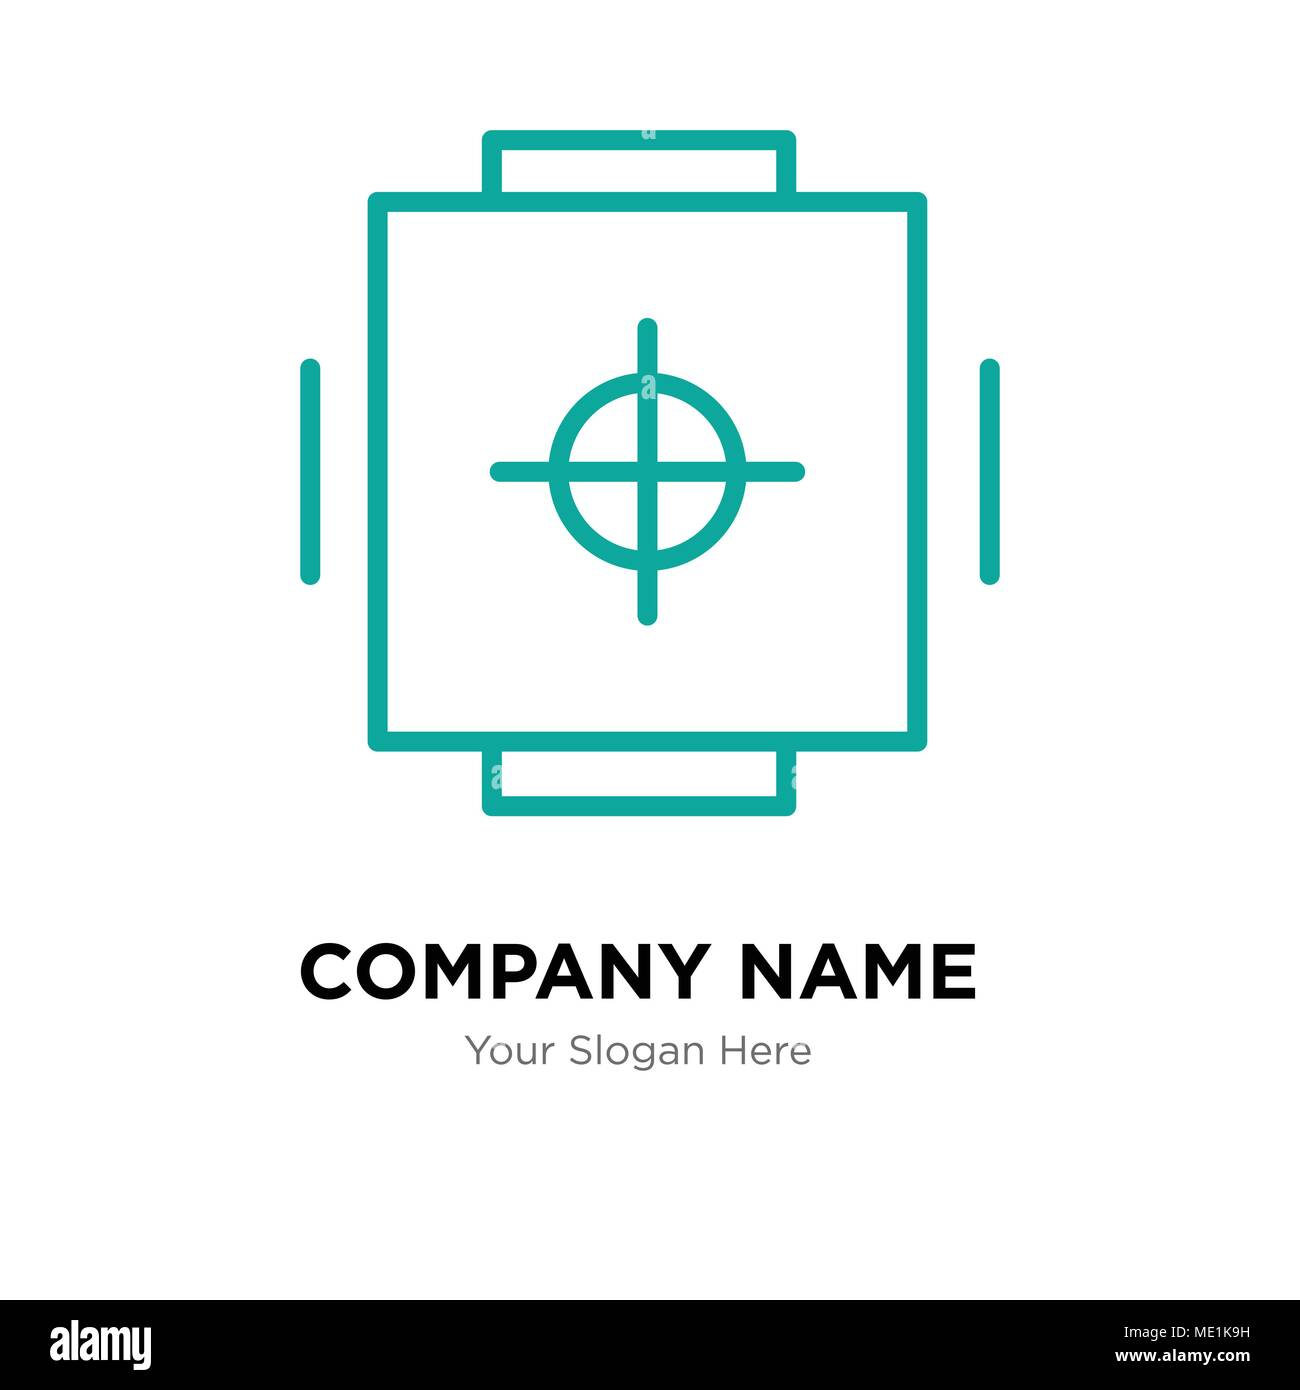 Diagram Of A Safety Box Trusted Wiring Safe Fuse Company Logo Design Template Business Corporate Vector For 2007 Impala